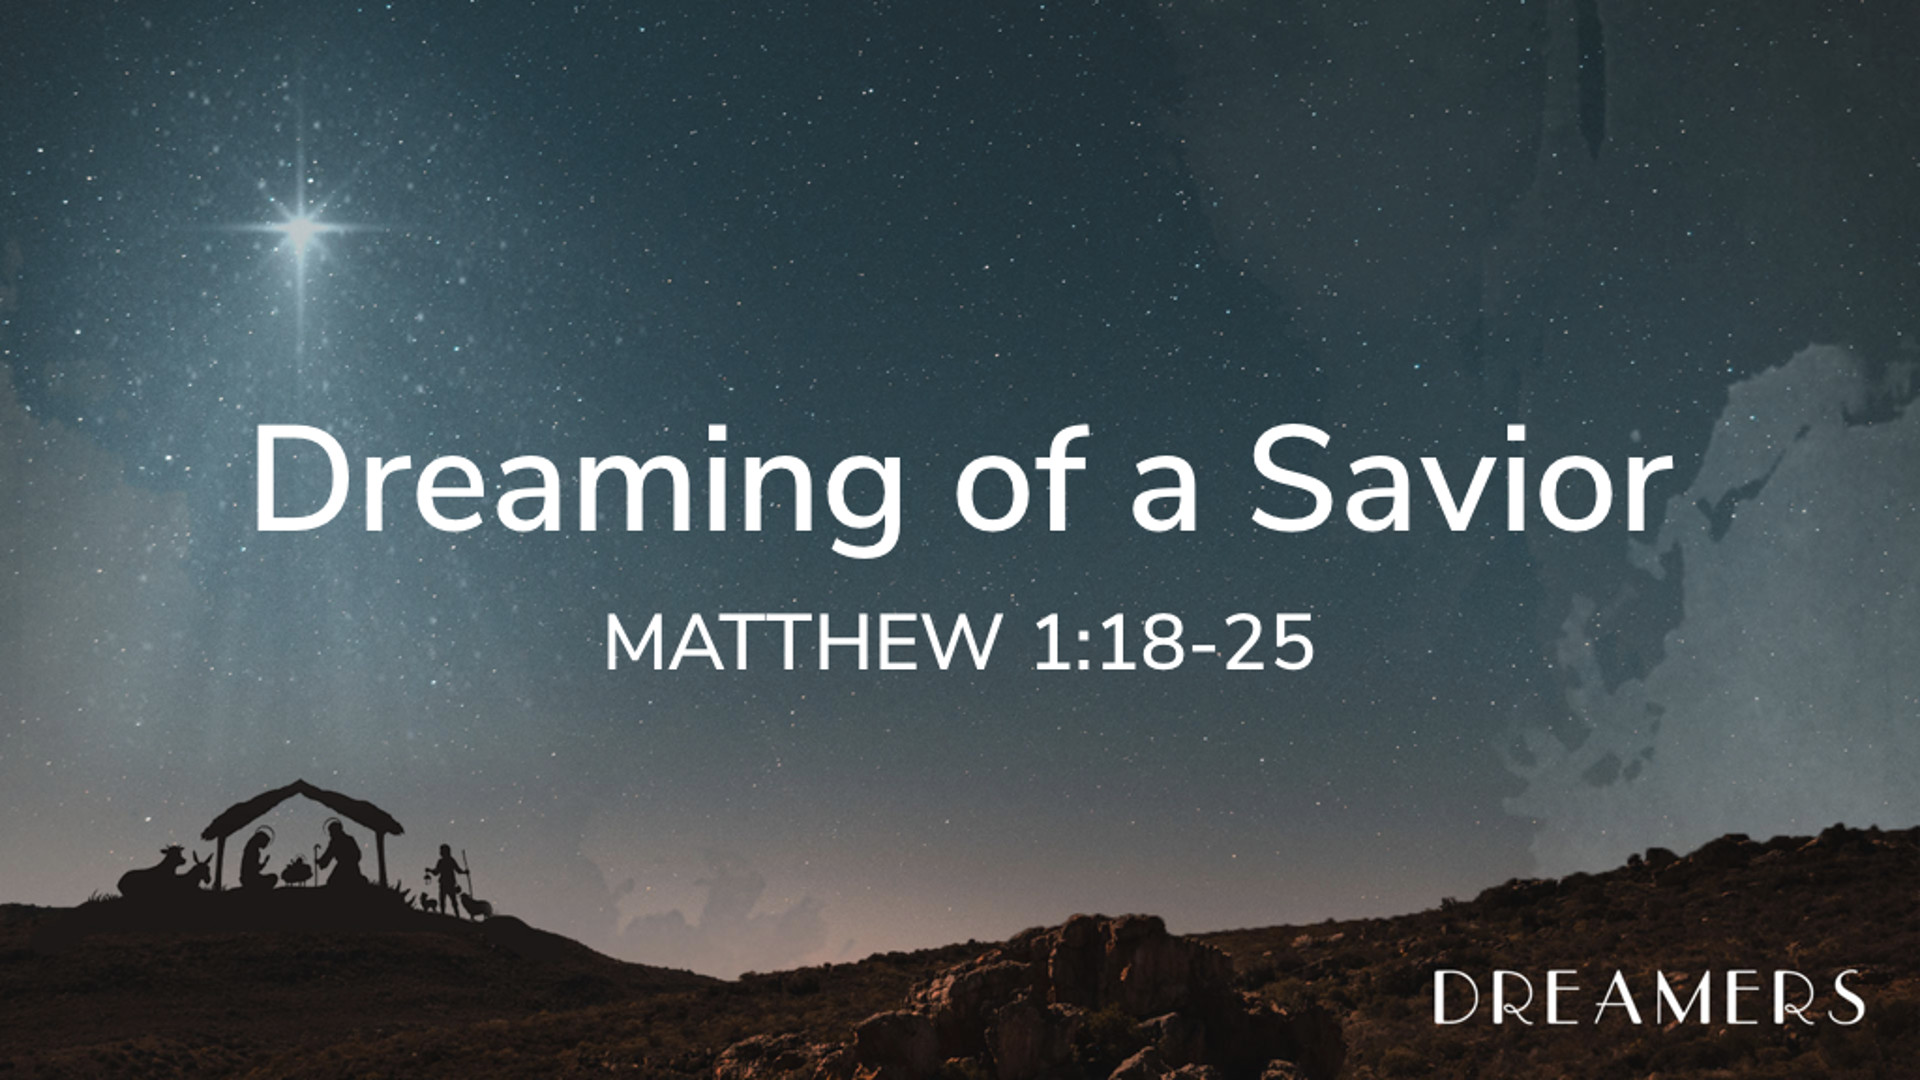 Matt 1.18-25 - Dreaming of a Savior.jpg